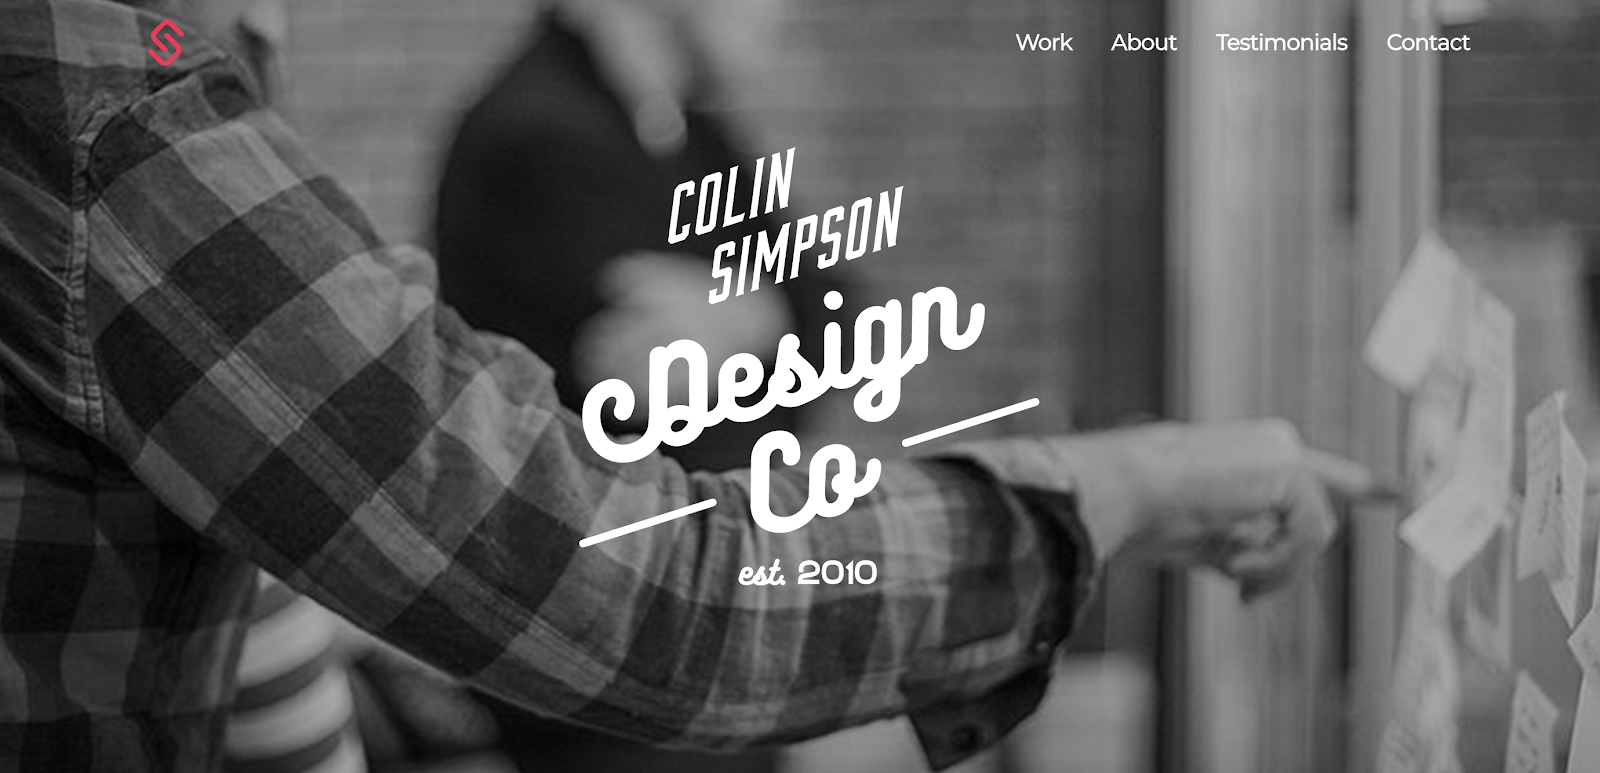 Web Developer Portfolio of Colin Simpson